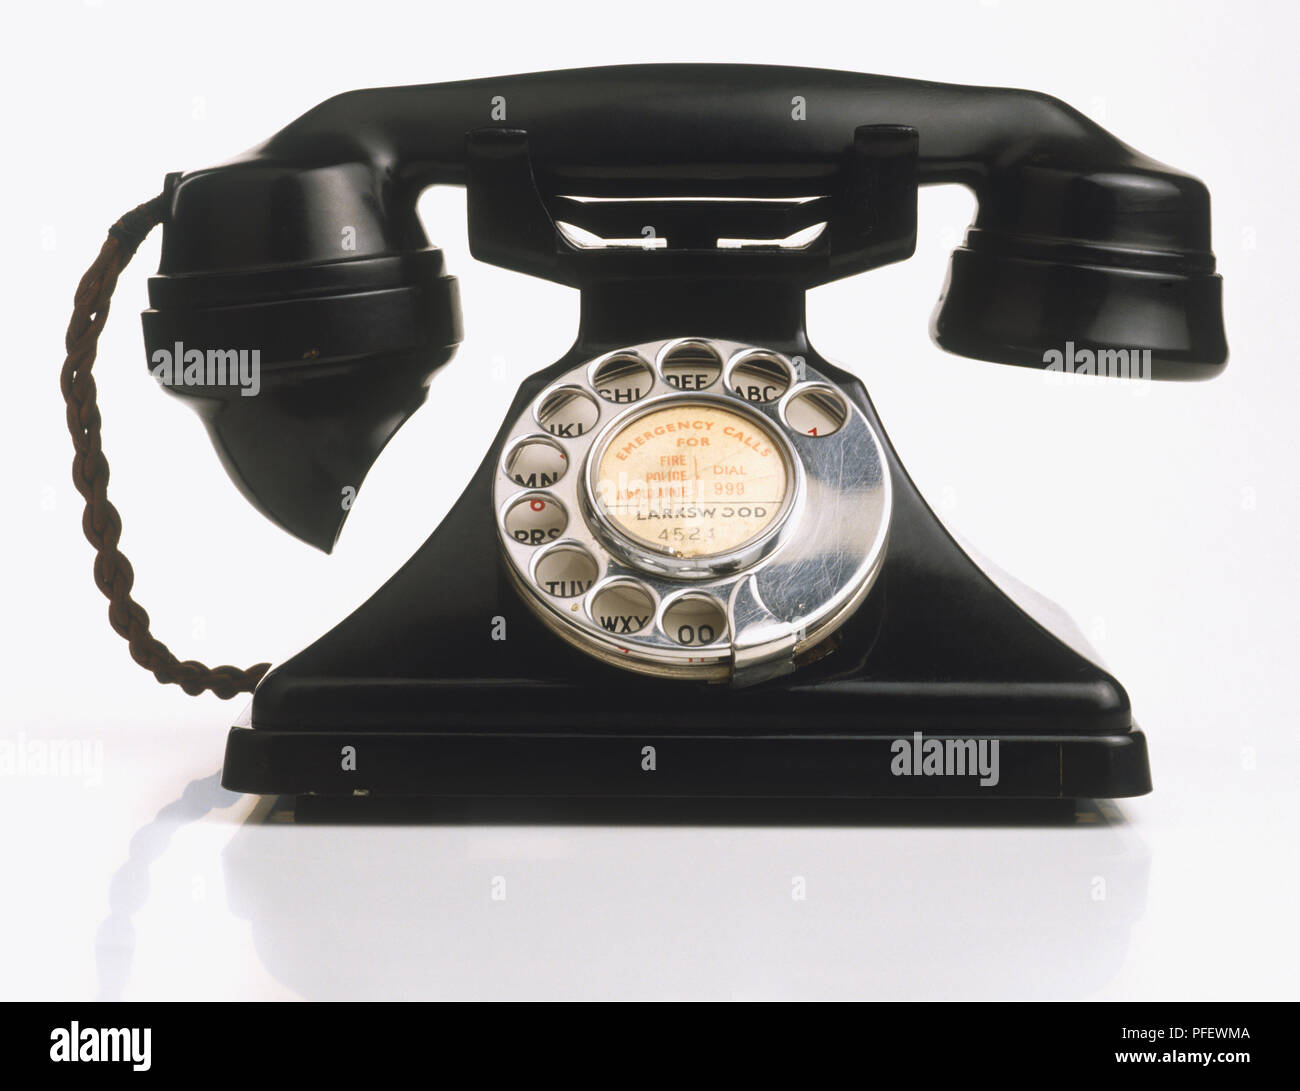 Black telephone with rotary dial, close up. - Stock Image